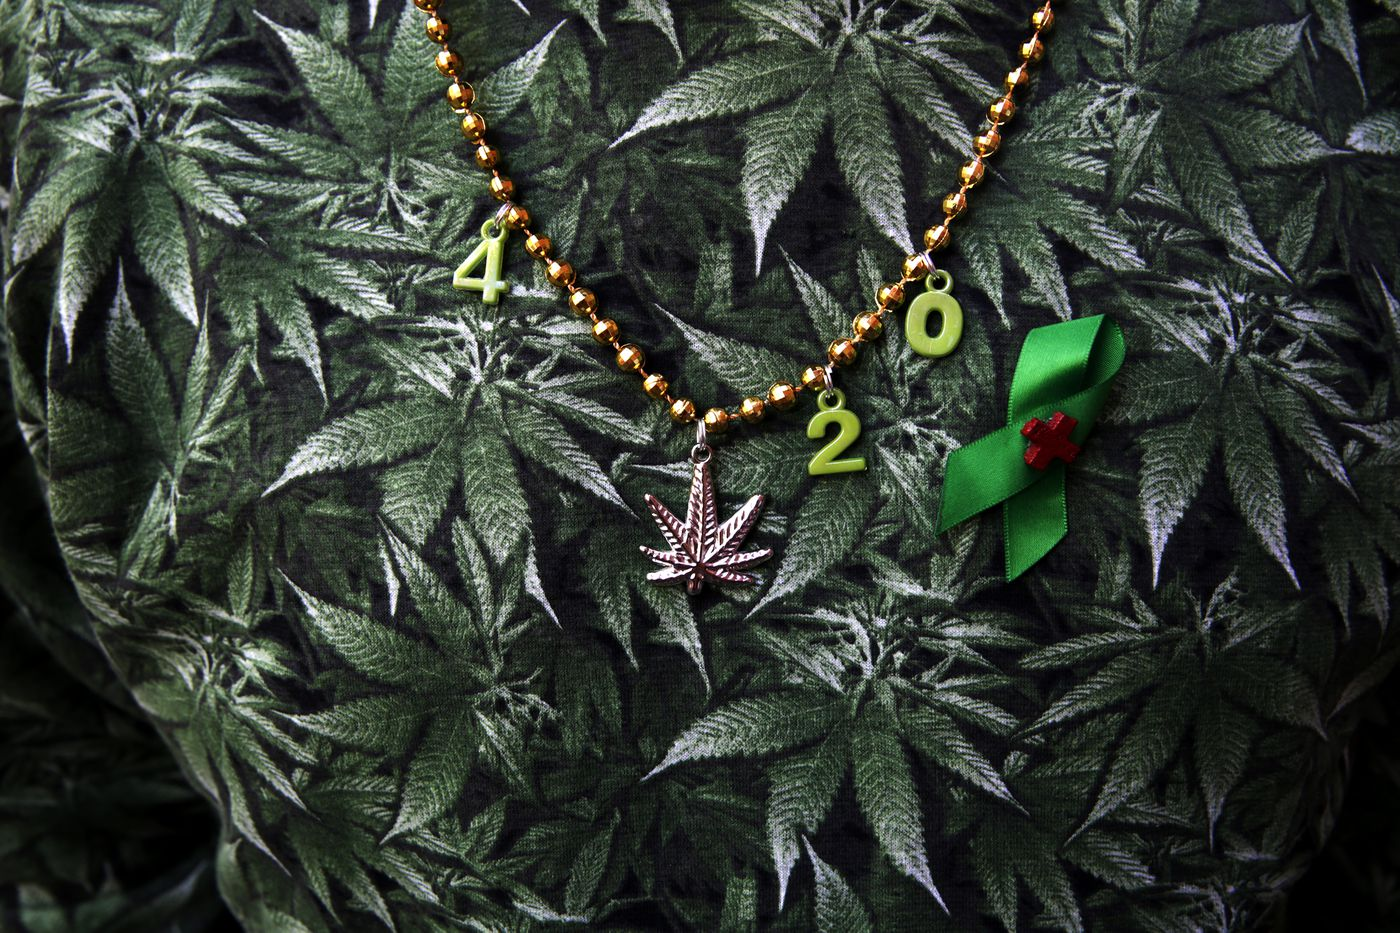 420 online dating meaning